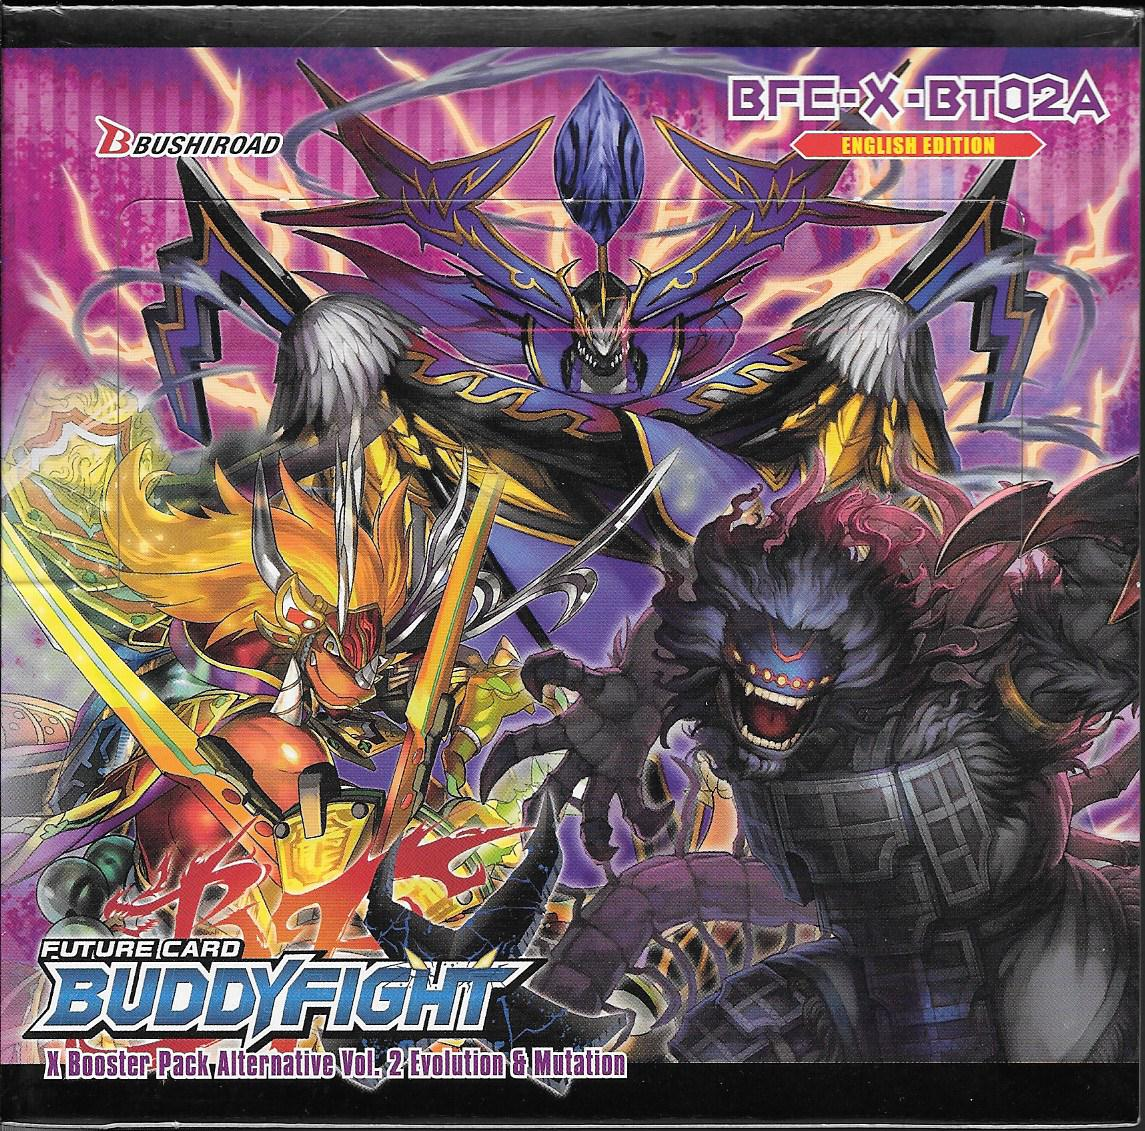 Future Card Buddyfight Evolution Amp Mutation 30 Pack